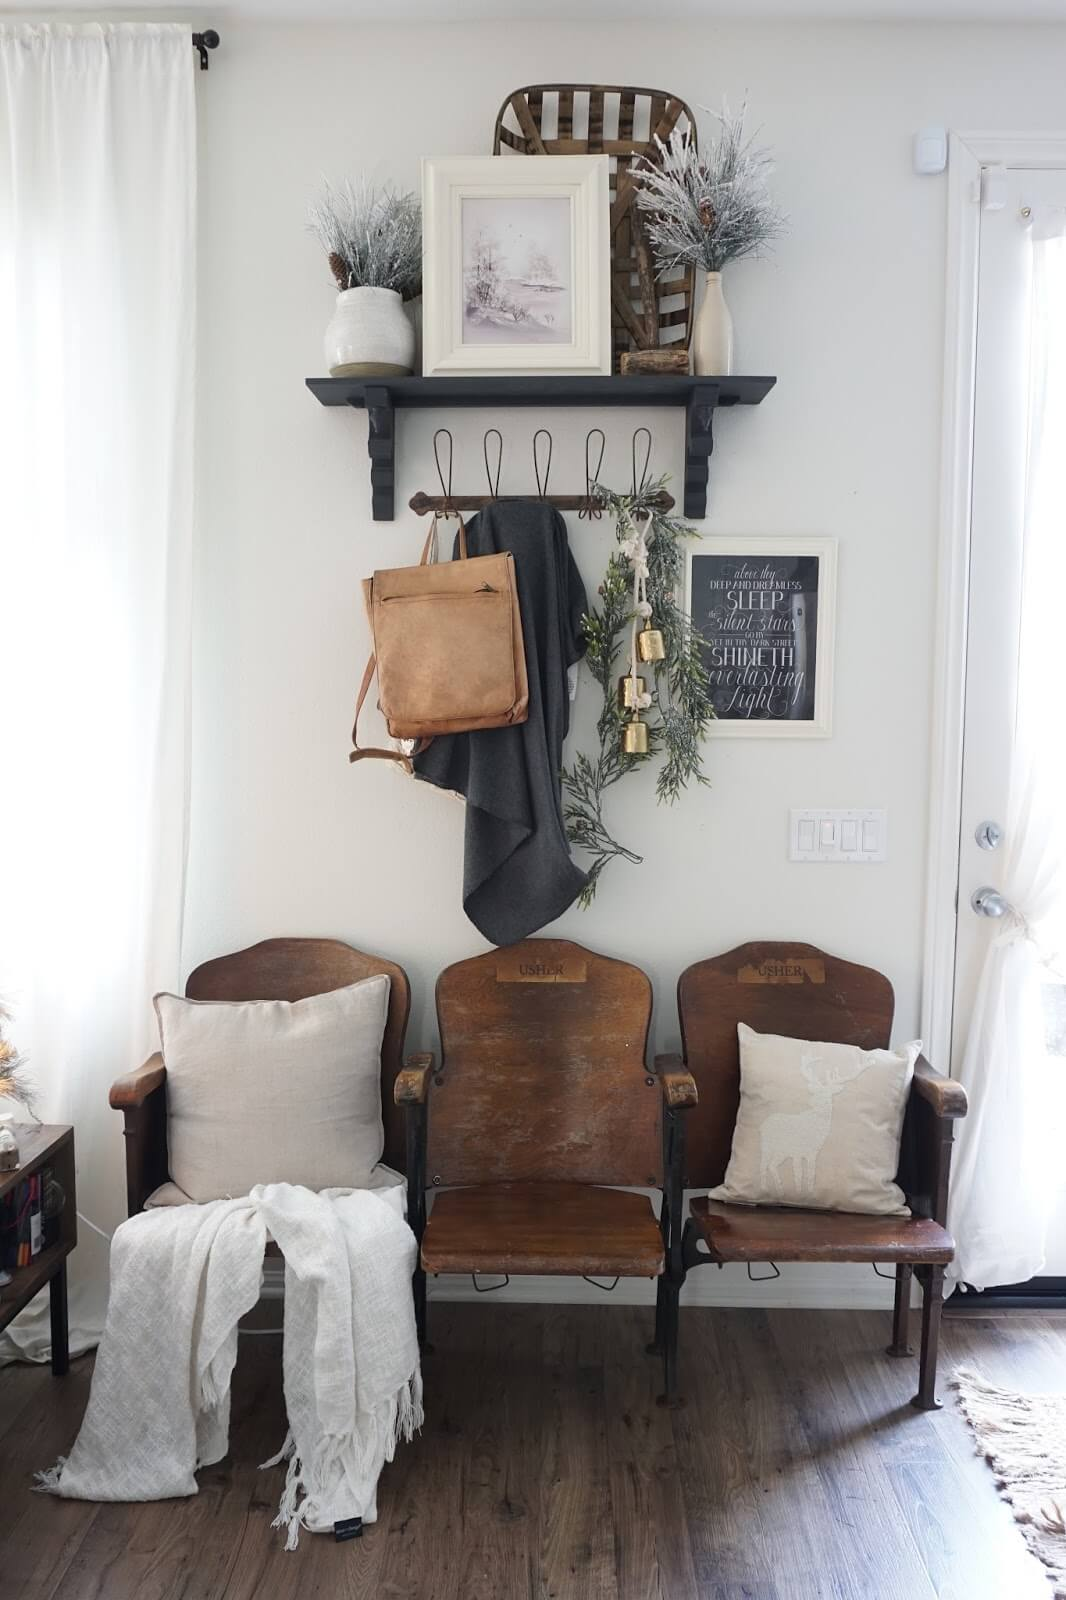 Add Drama with Vintage Theater Seating